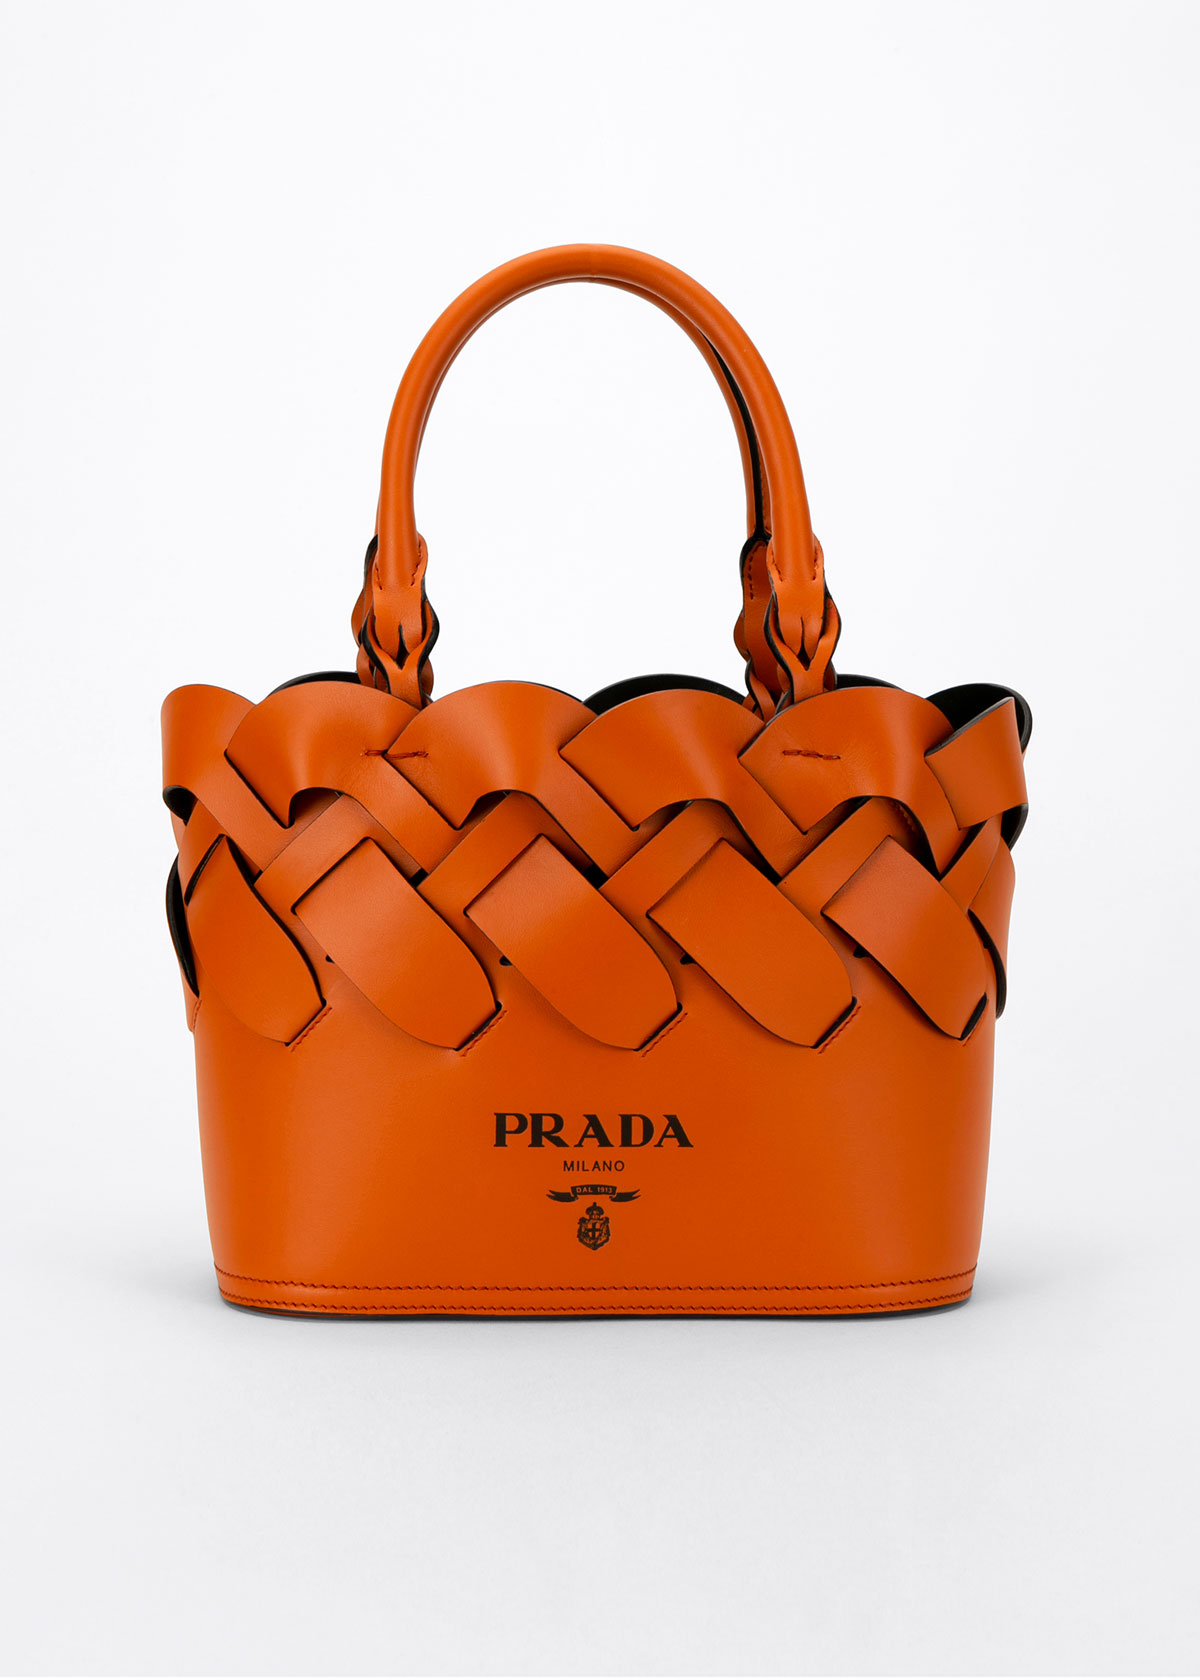 Prada Totes WOVEN LEATHER TOP-HANDLE TOTE BAG